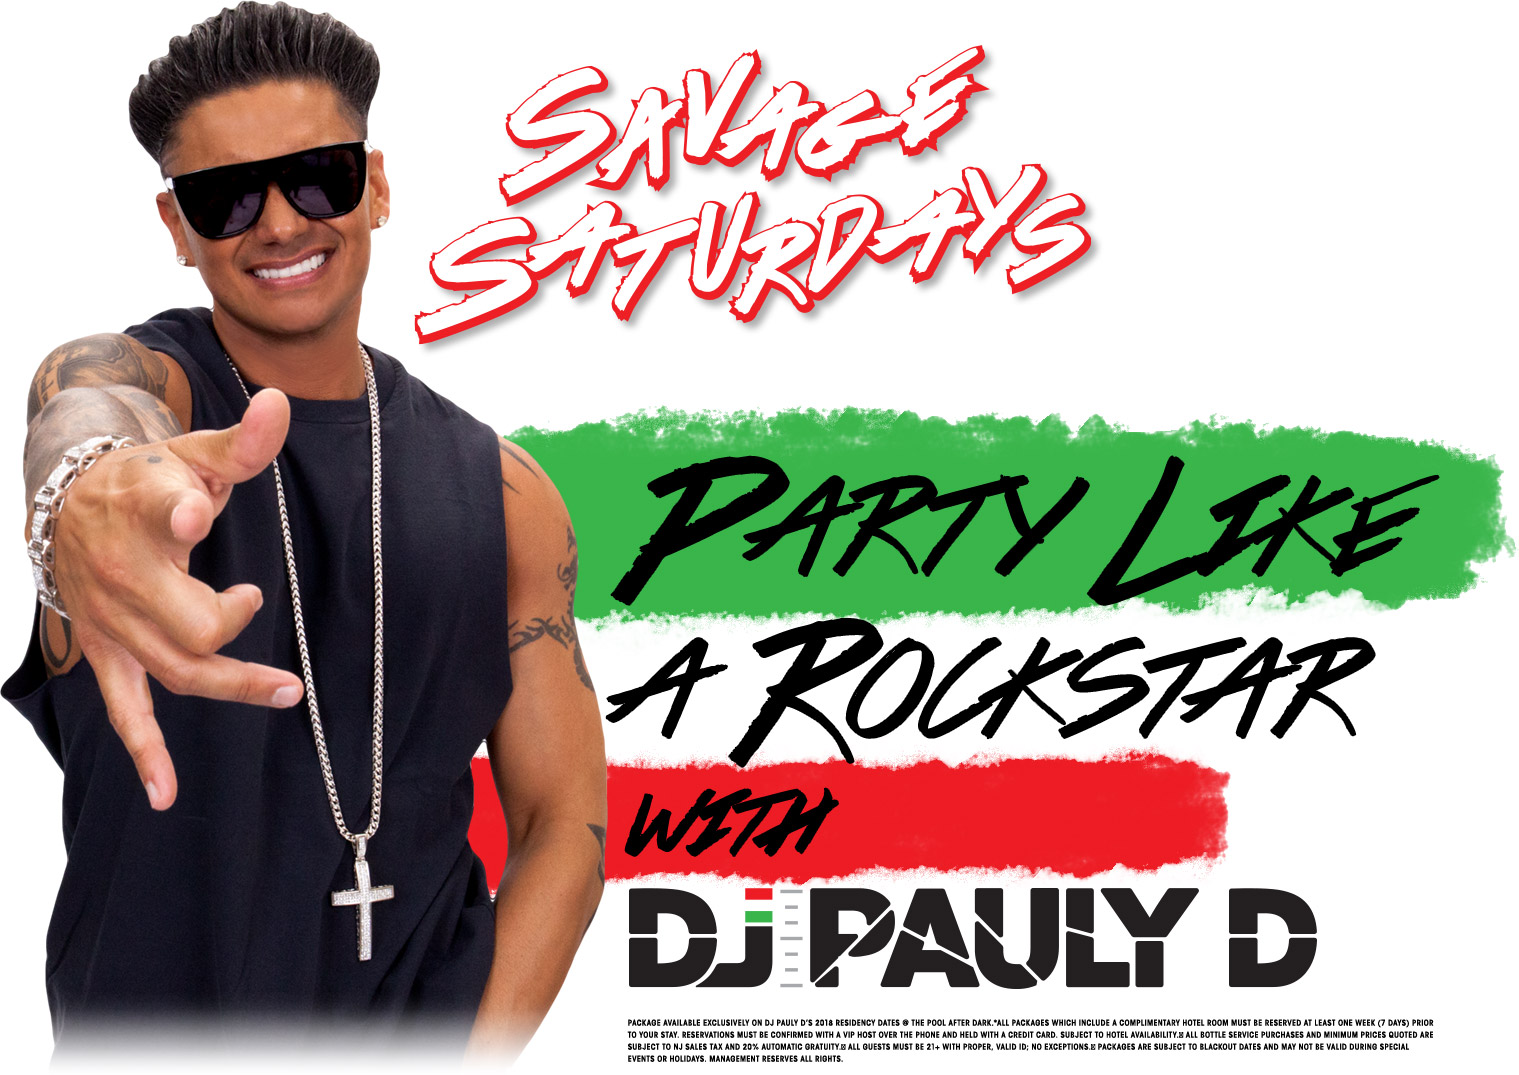 Party Like DJ Pauly D | The Pool After Dark